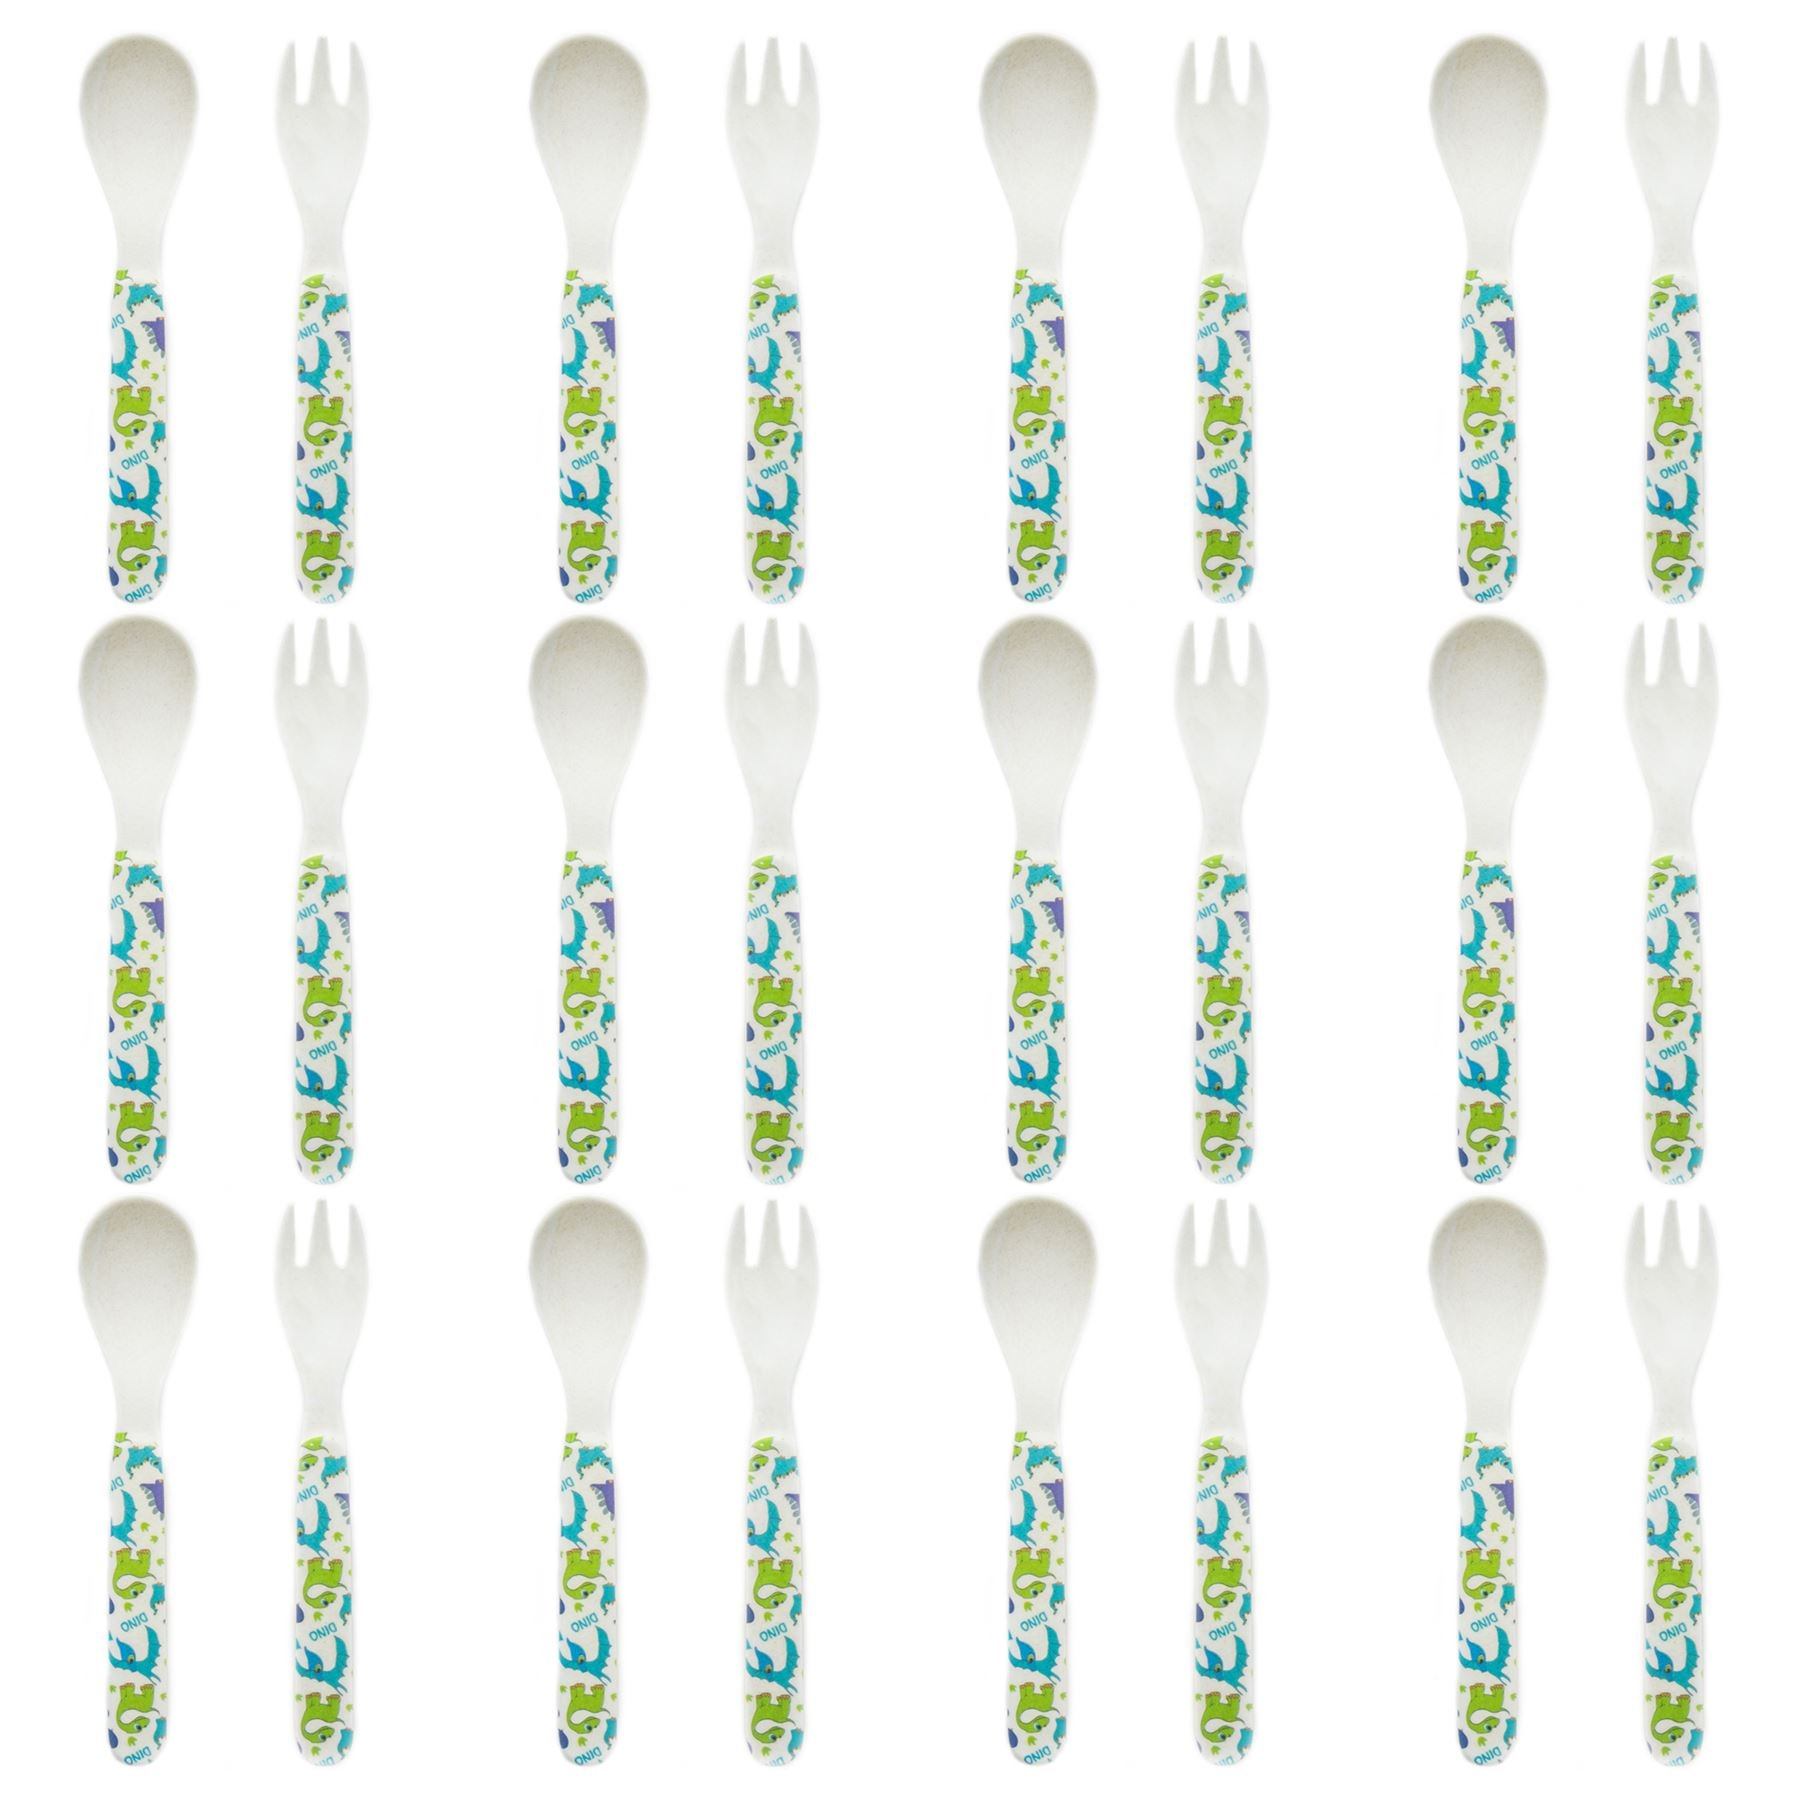 Tiny Dining Children's Bamboo Fibre Dining Fork & Spoon Cutlery Set - Dinosaur - Pack of 12 by Tiny Dining